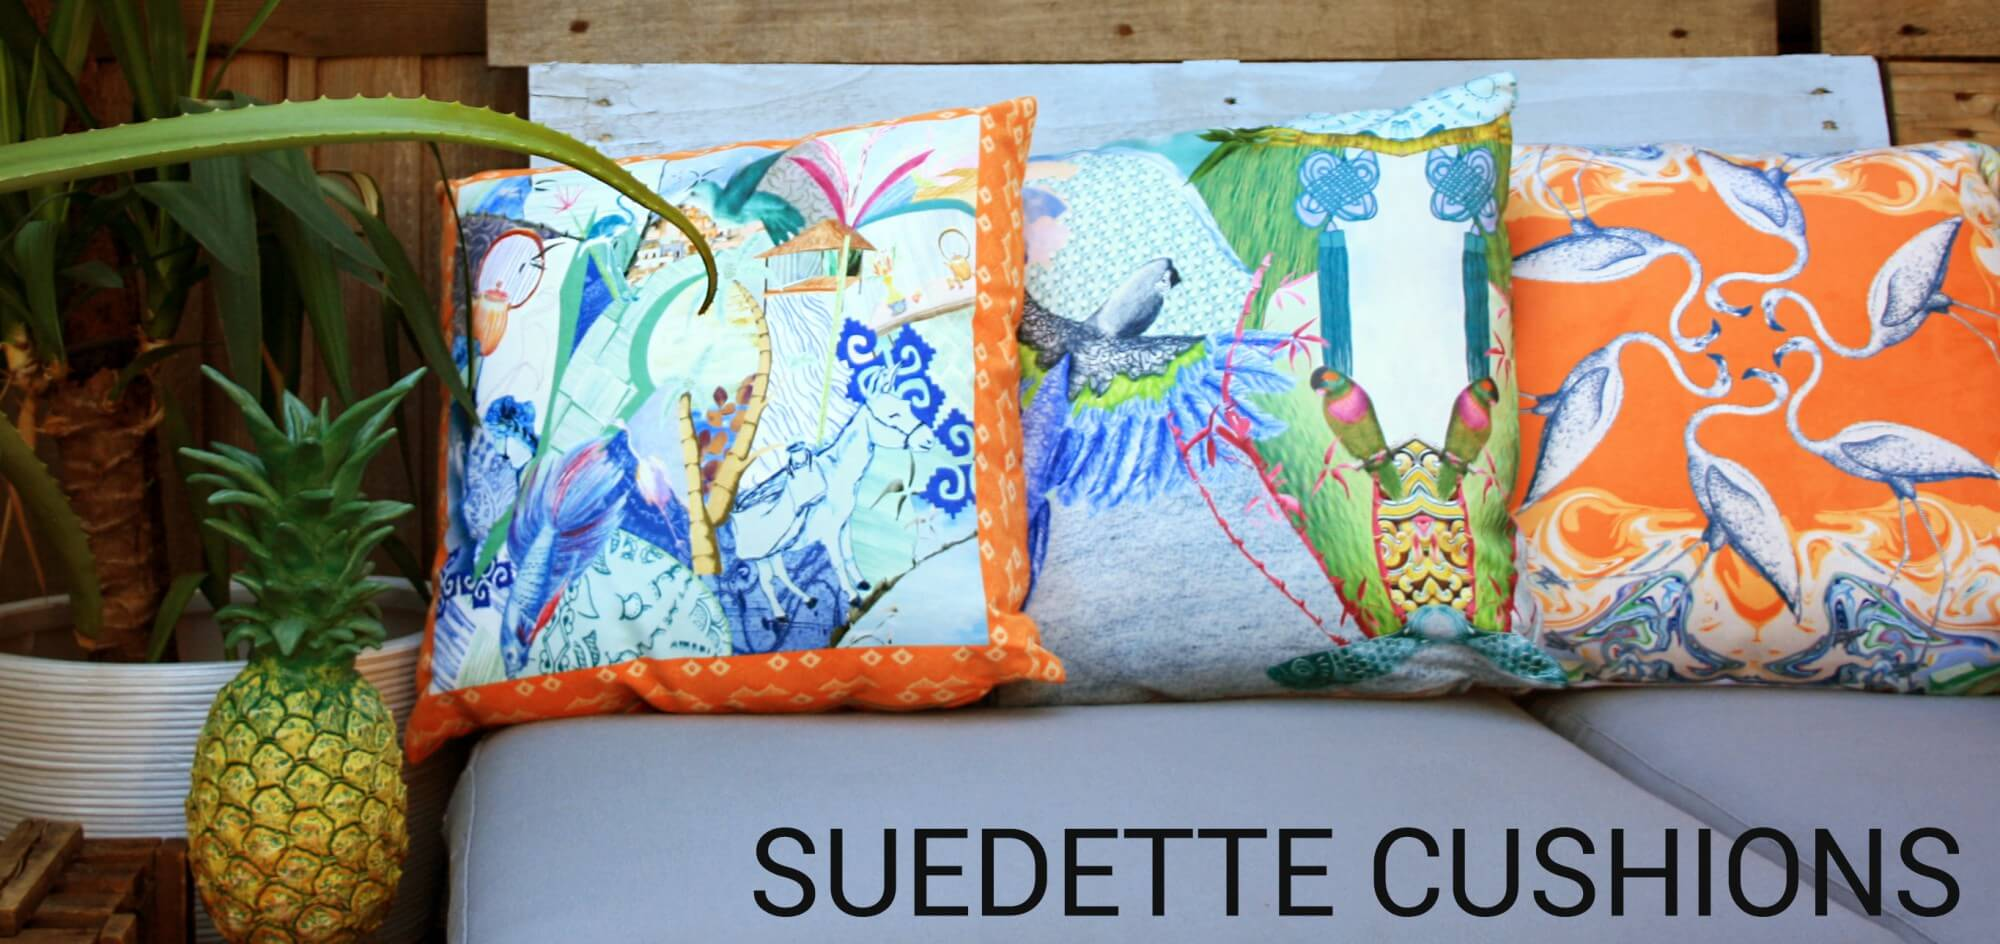 Suedette Cushions